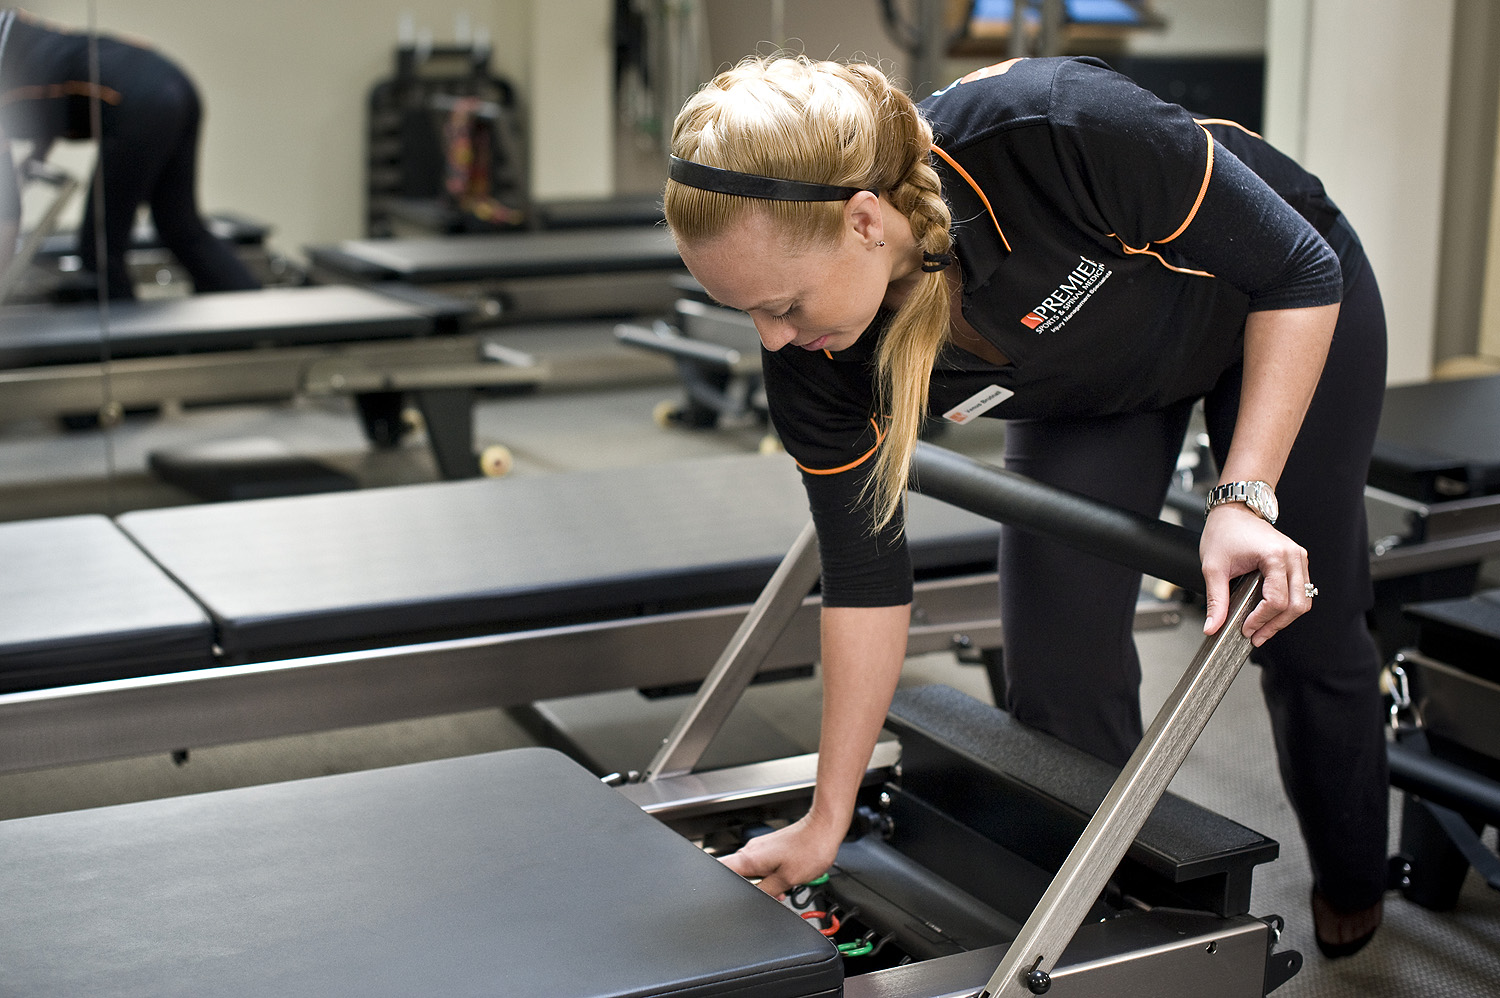 Pilates instructor Venus Brutnall adjusting one of the pilates machines in the studio